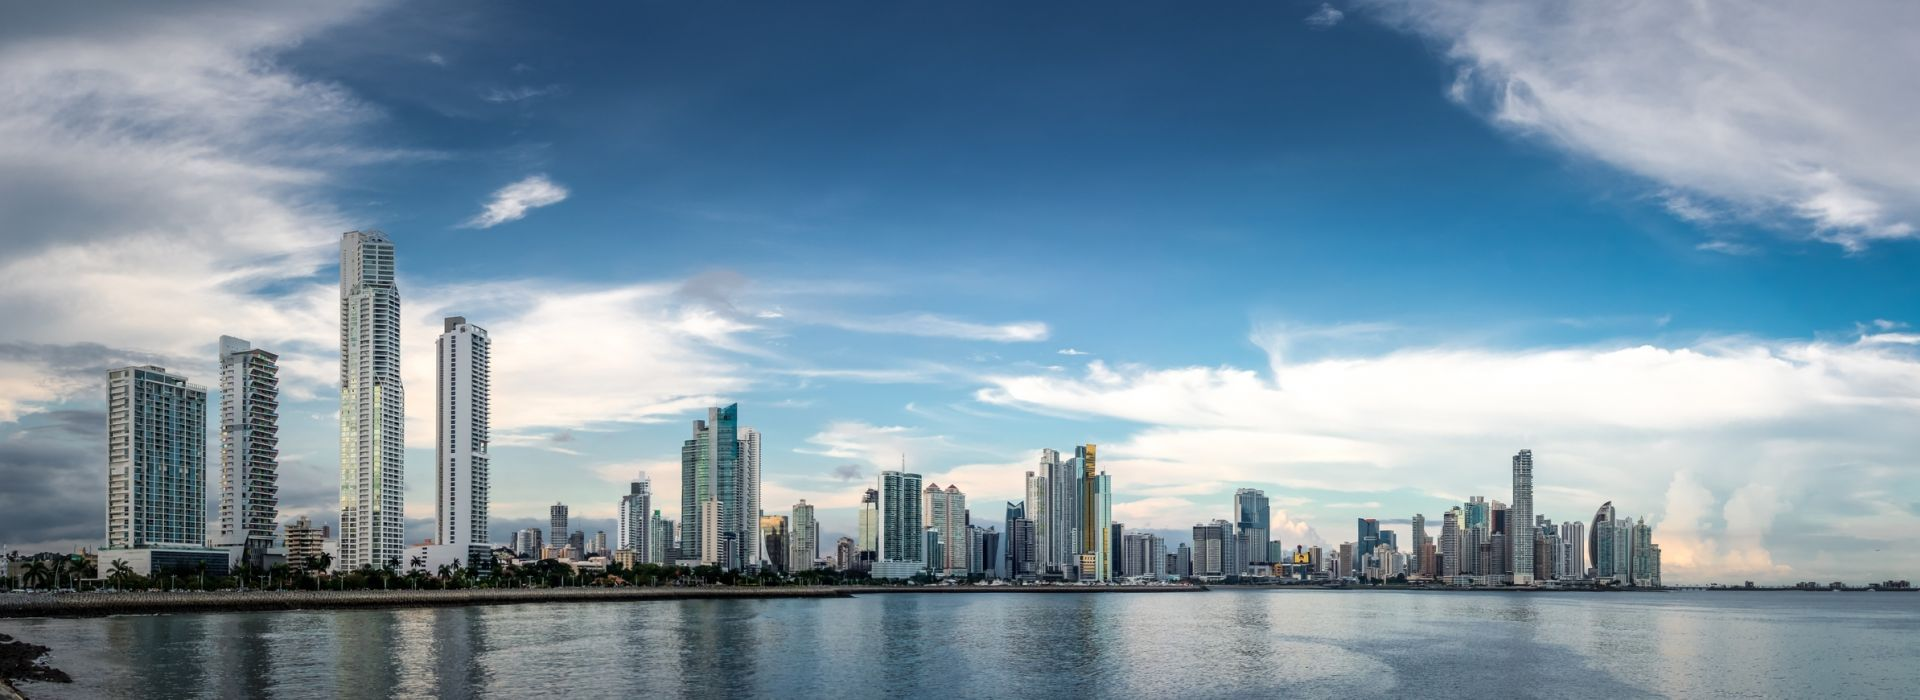 Sightseeing, attractions, culture and history Tours in Panama City